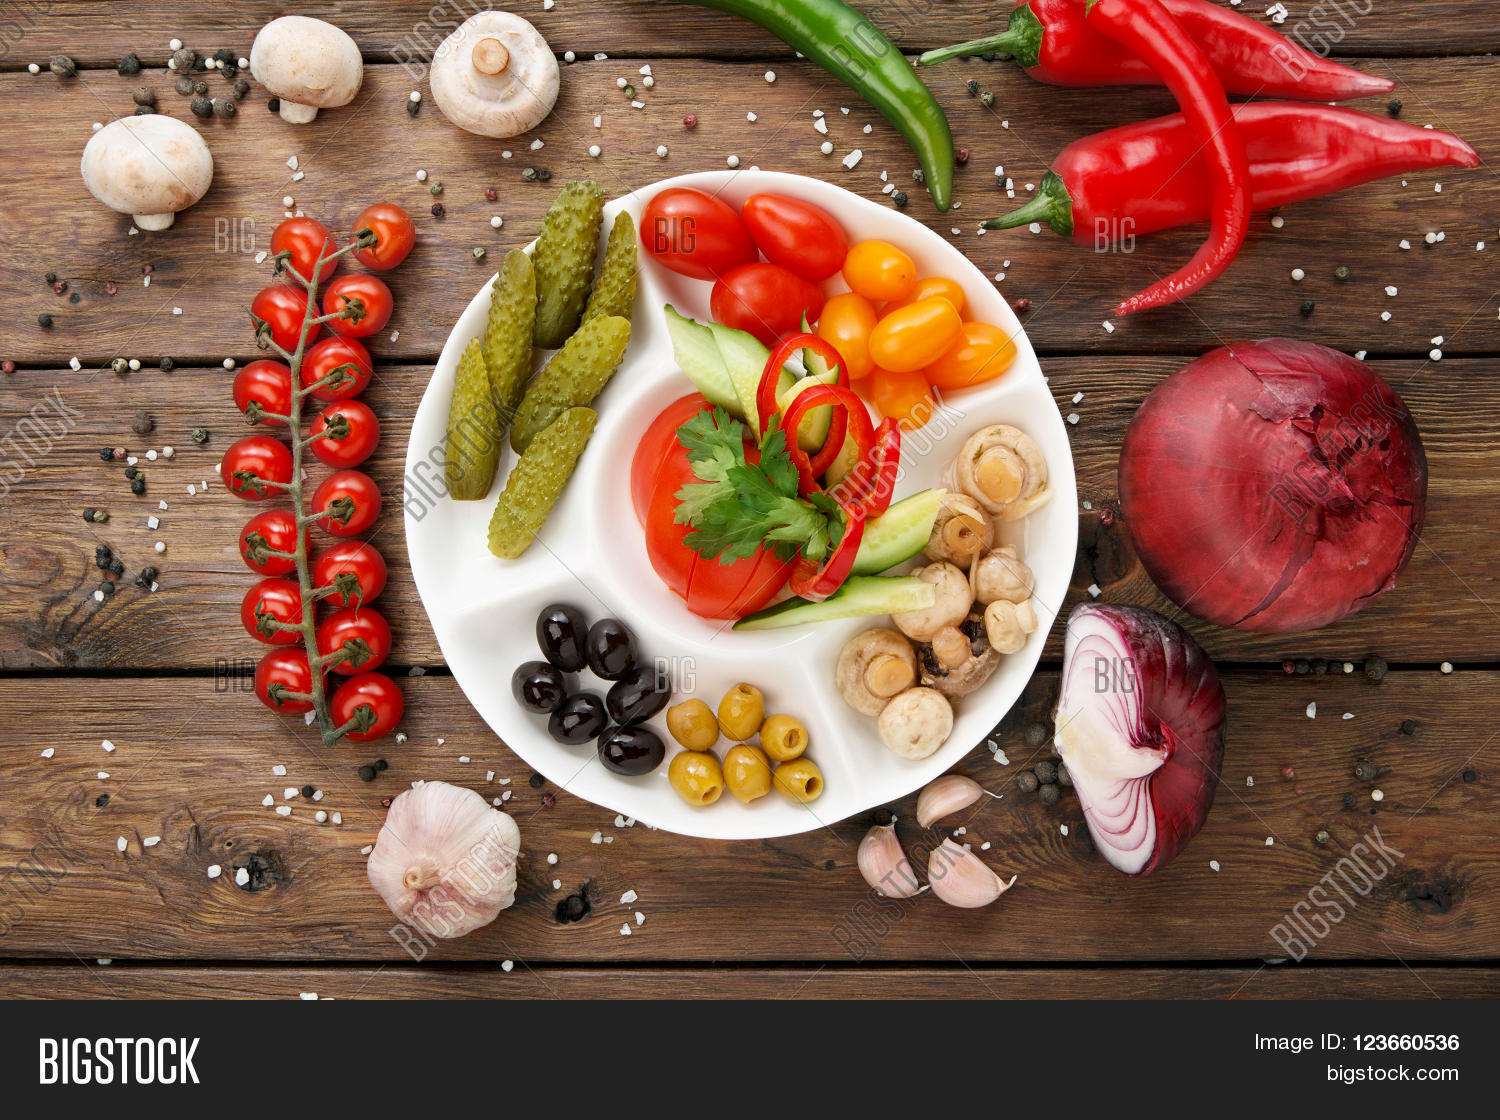 Plate With Food Top View Restaurant Appetizer Food Image And Photo Bigstock